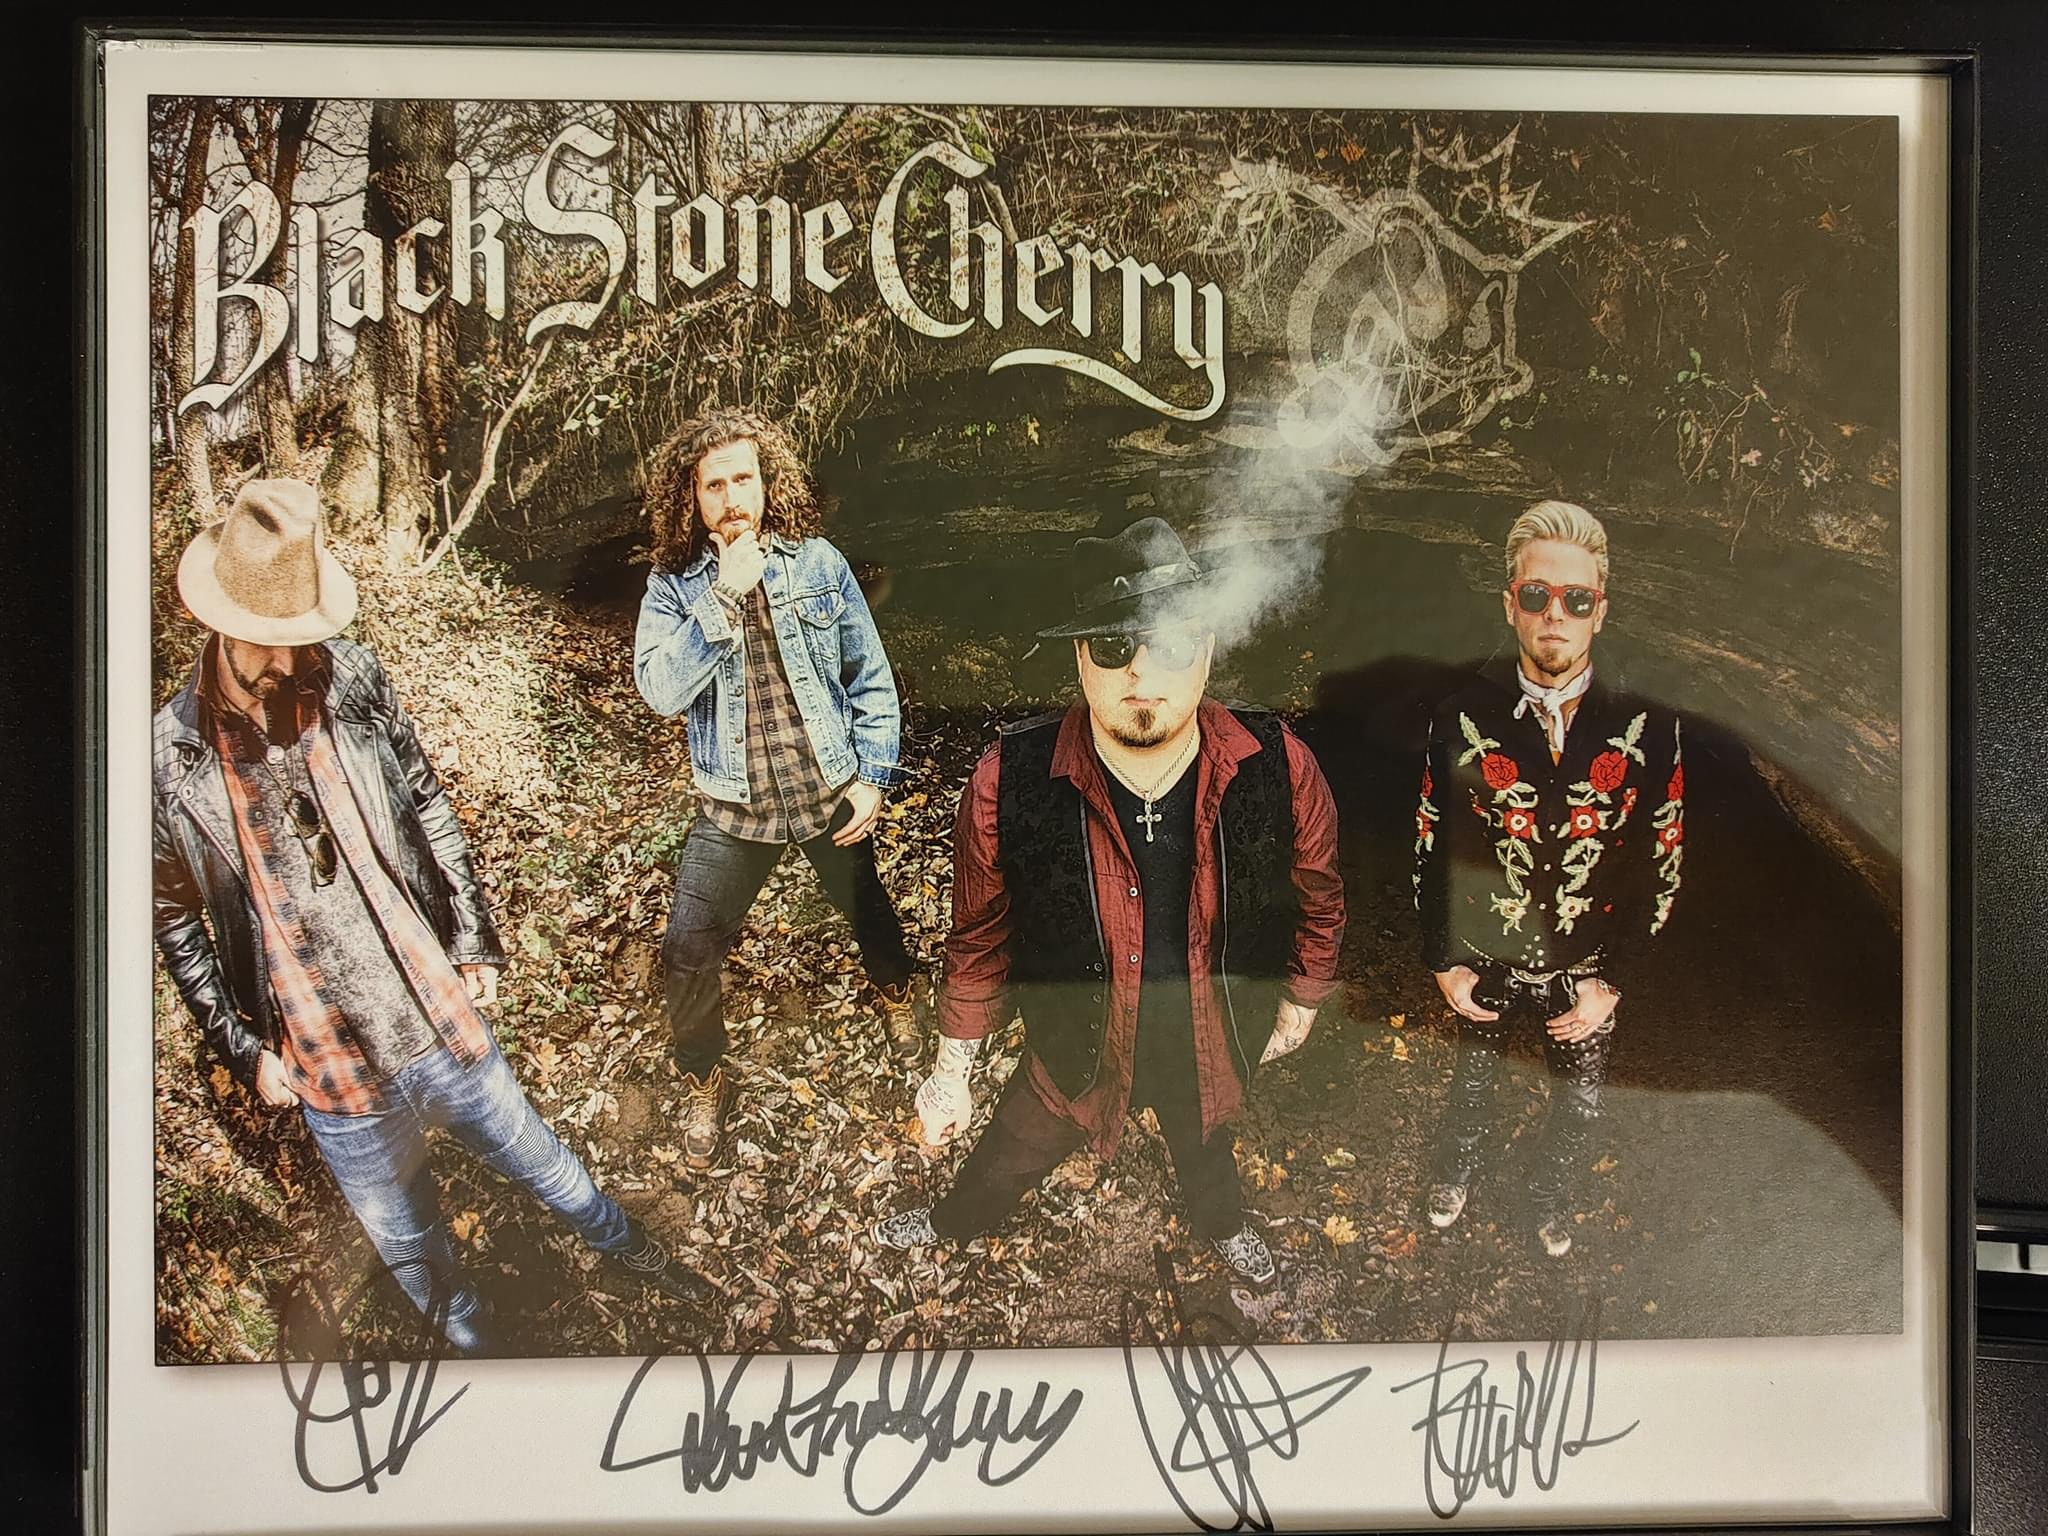 Blackstone Cherry band autographed 8x10 photo donated by Corey Hanson